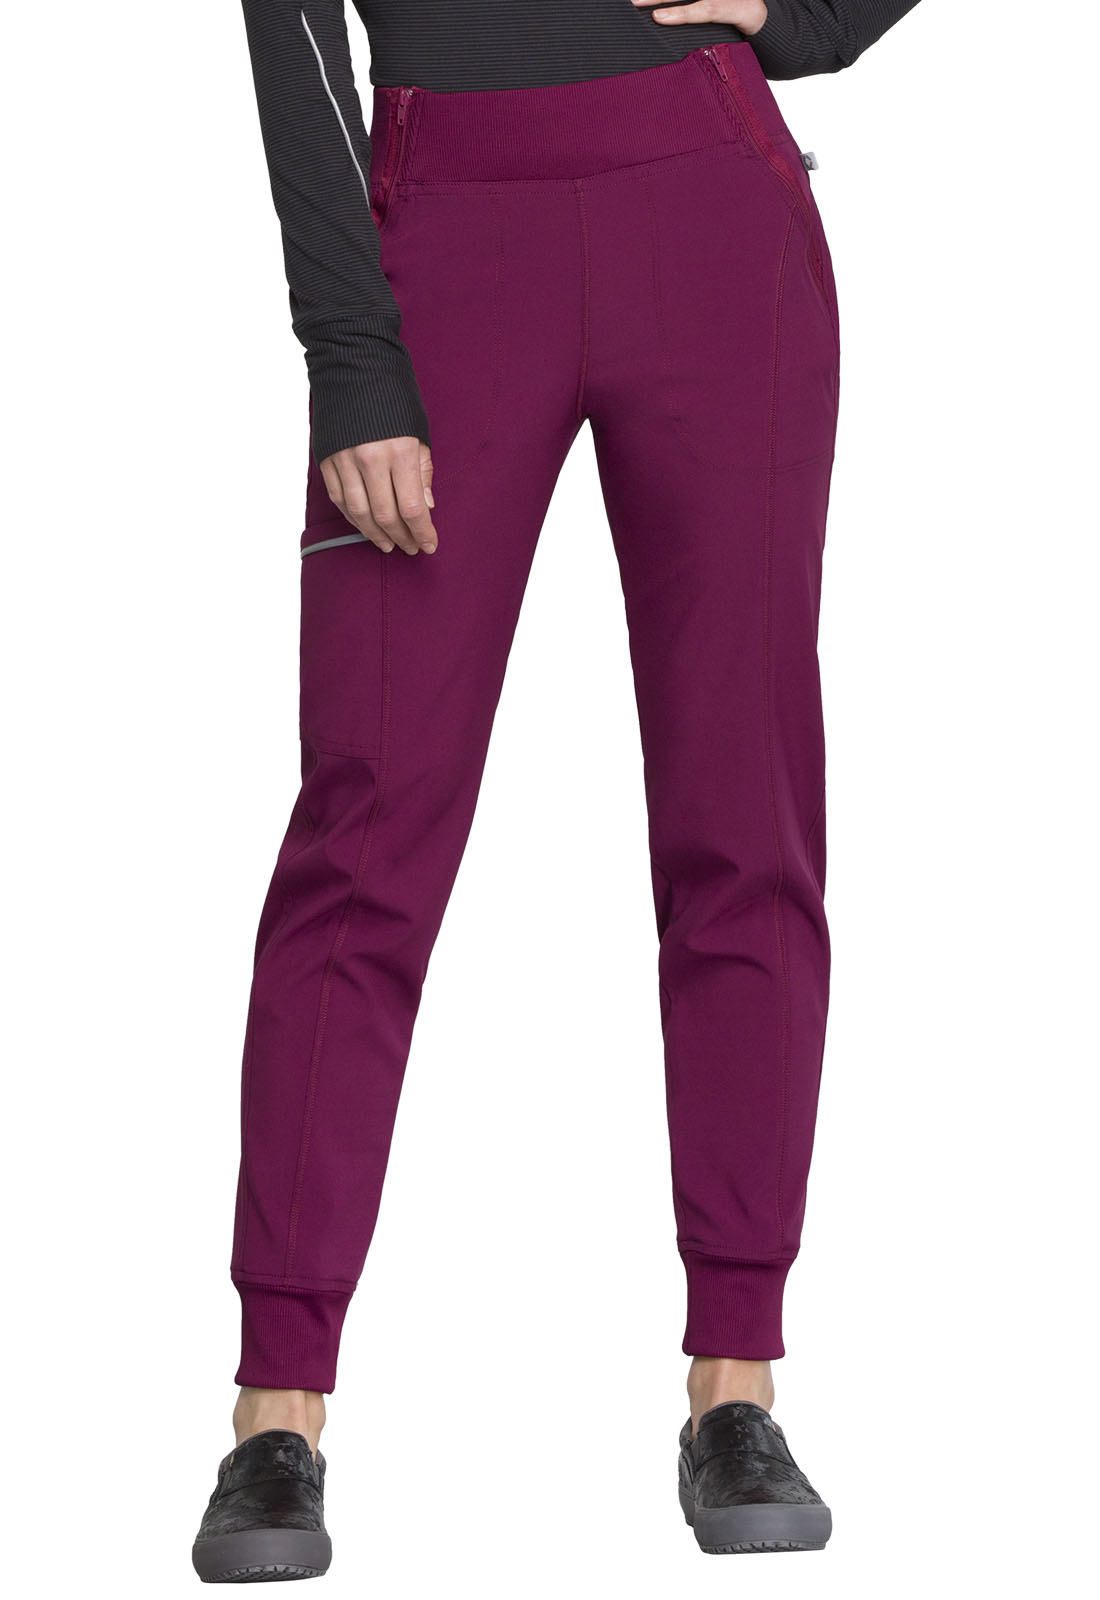 4d1d5022e4f Infinity Mid Rise Tapered Leg Jogger Pant in Wine CK110A-WNPS from ...